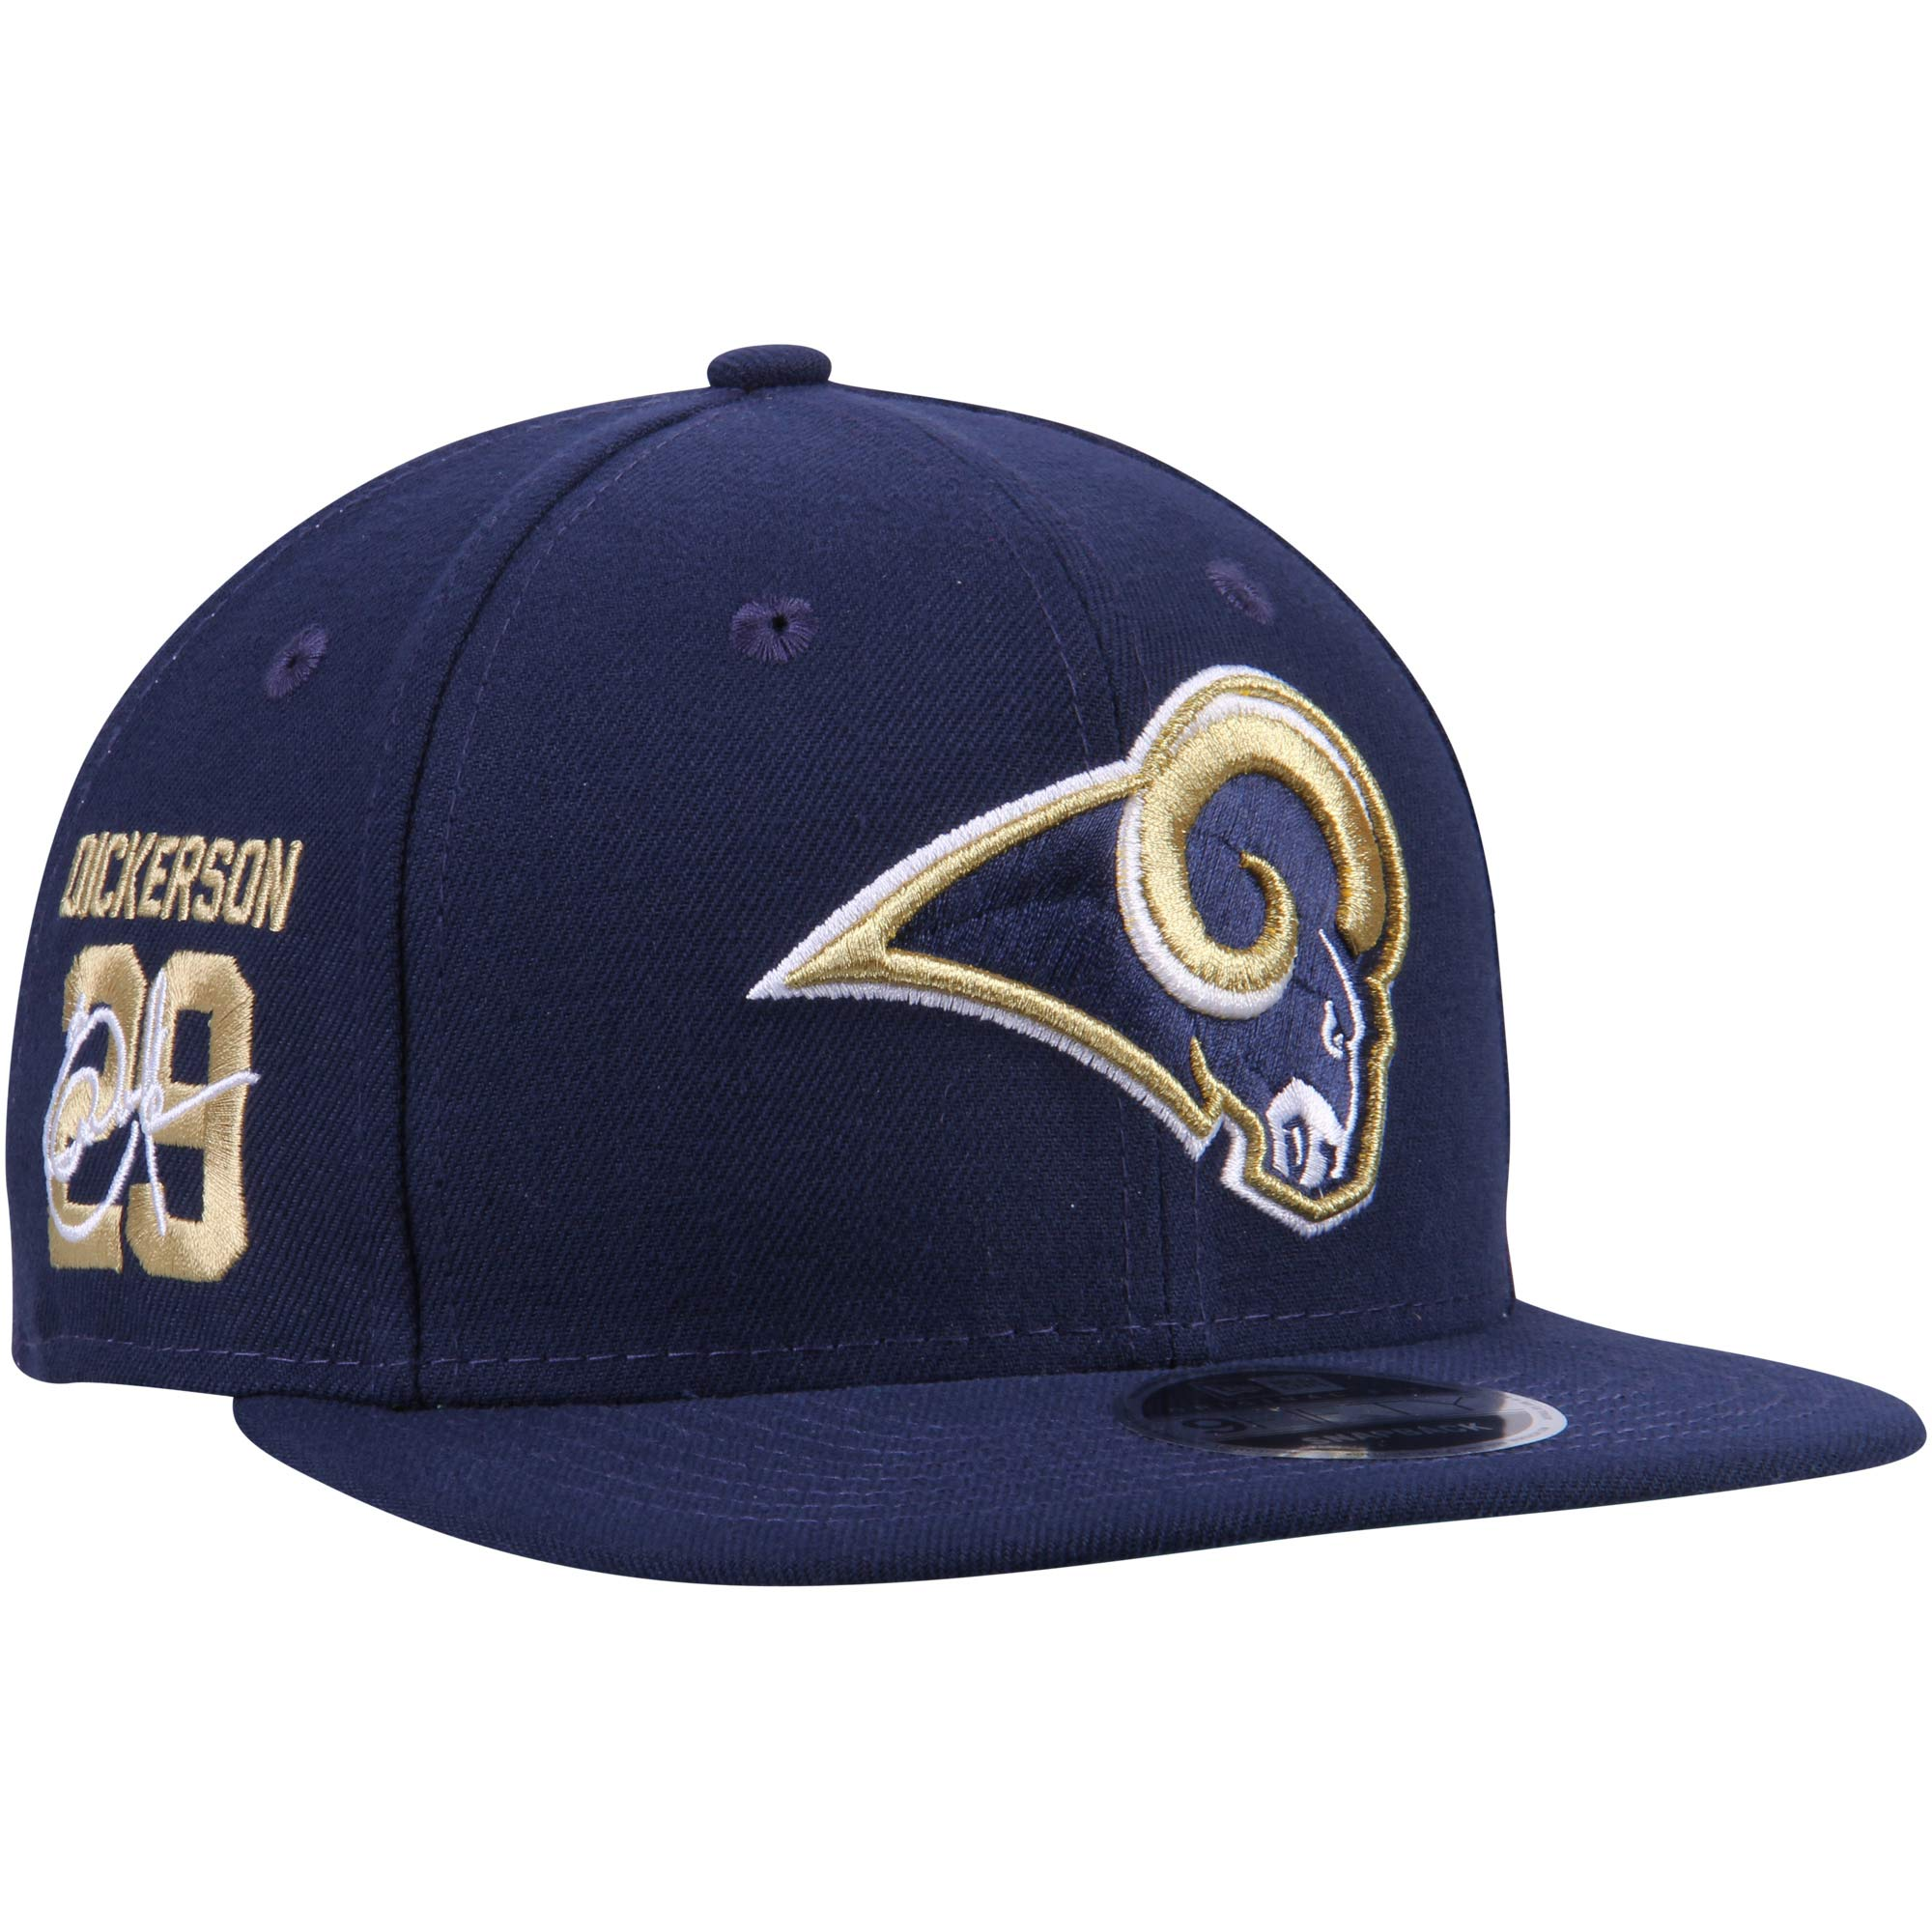 Eric Dickerson Los Angeles Rams New Era Signature Side 9FIFTY Adjustable Snapback Hat - Navy